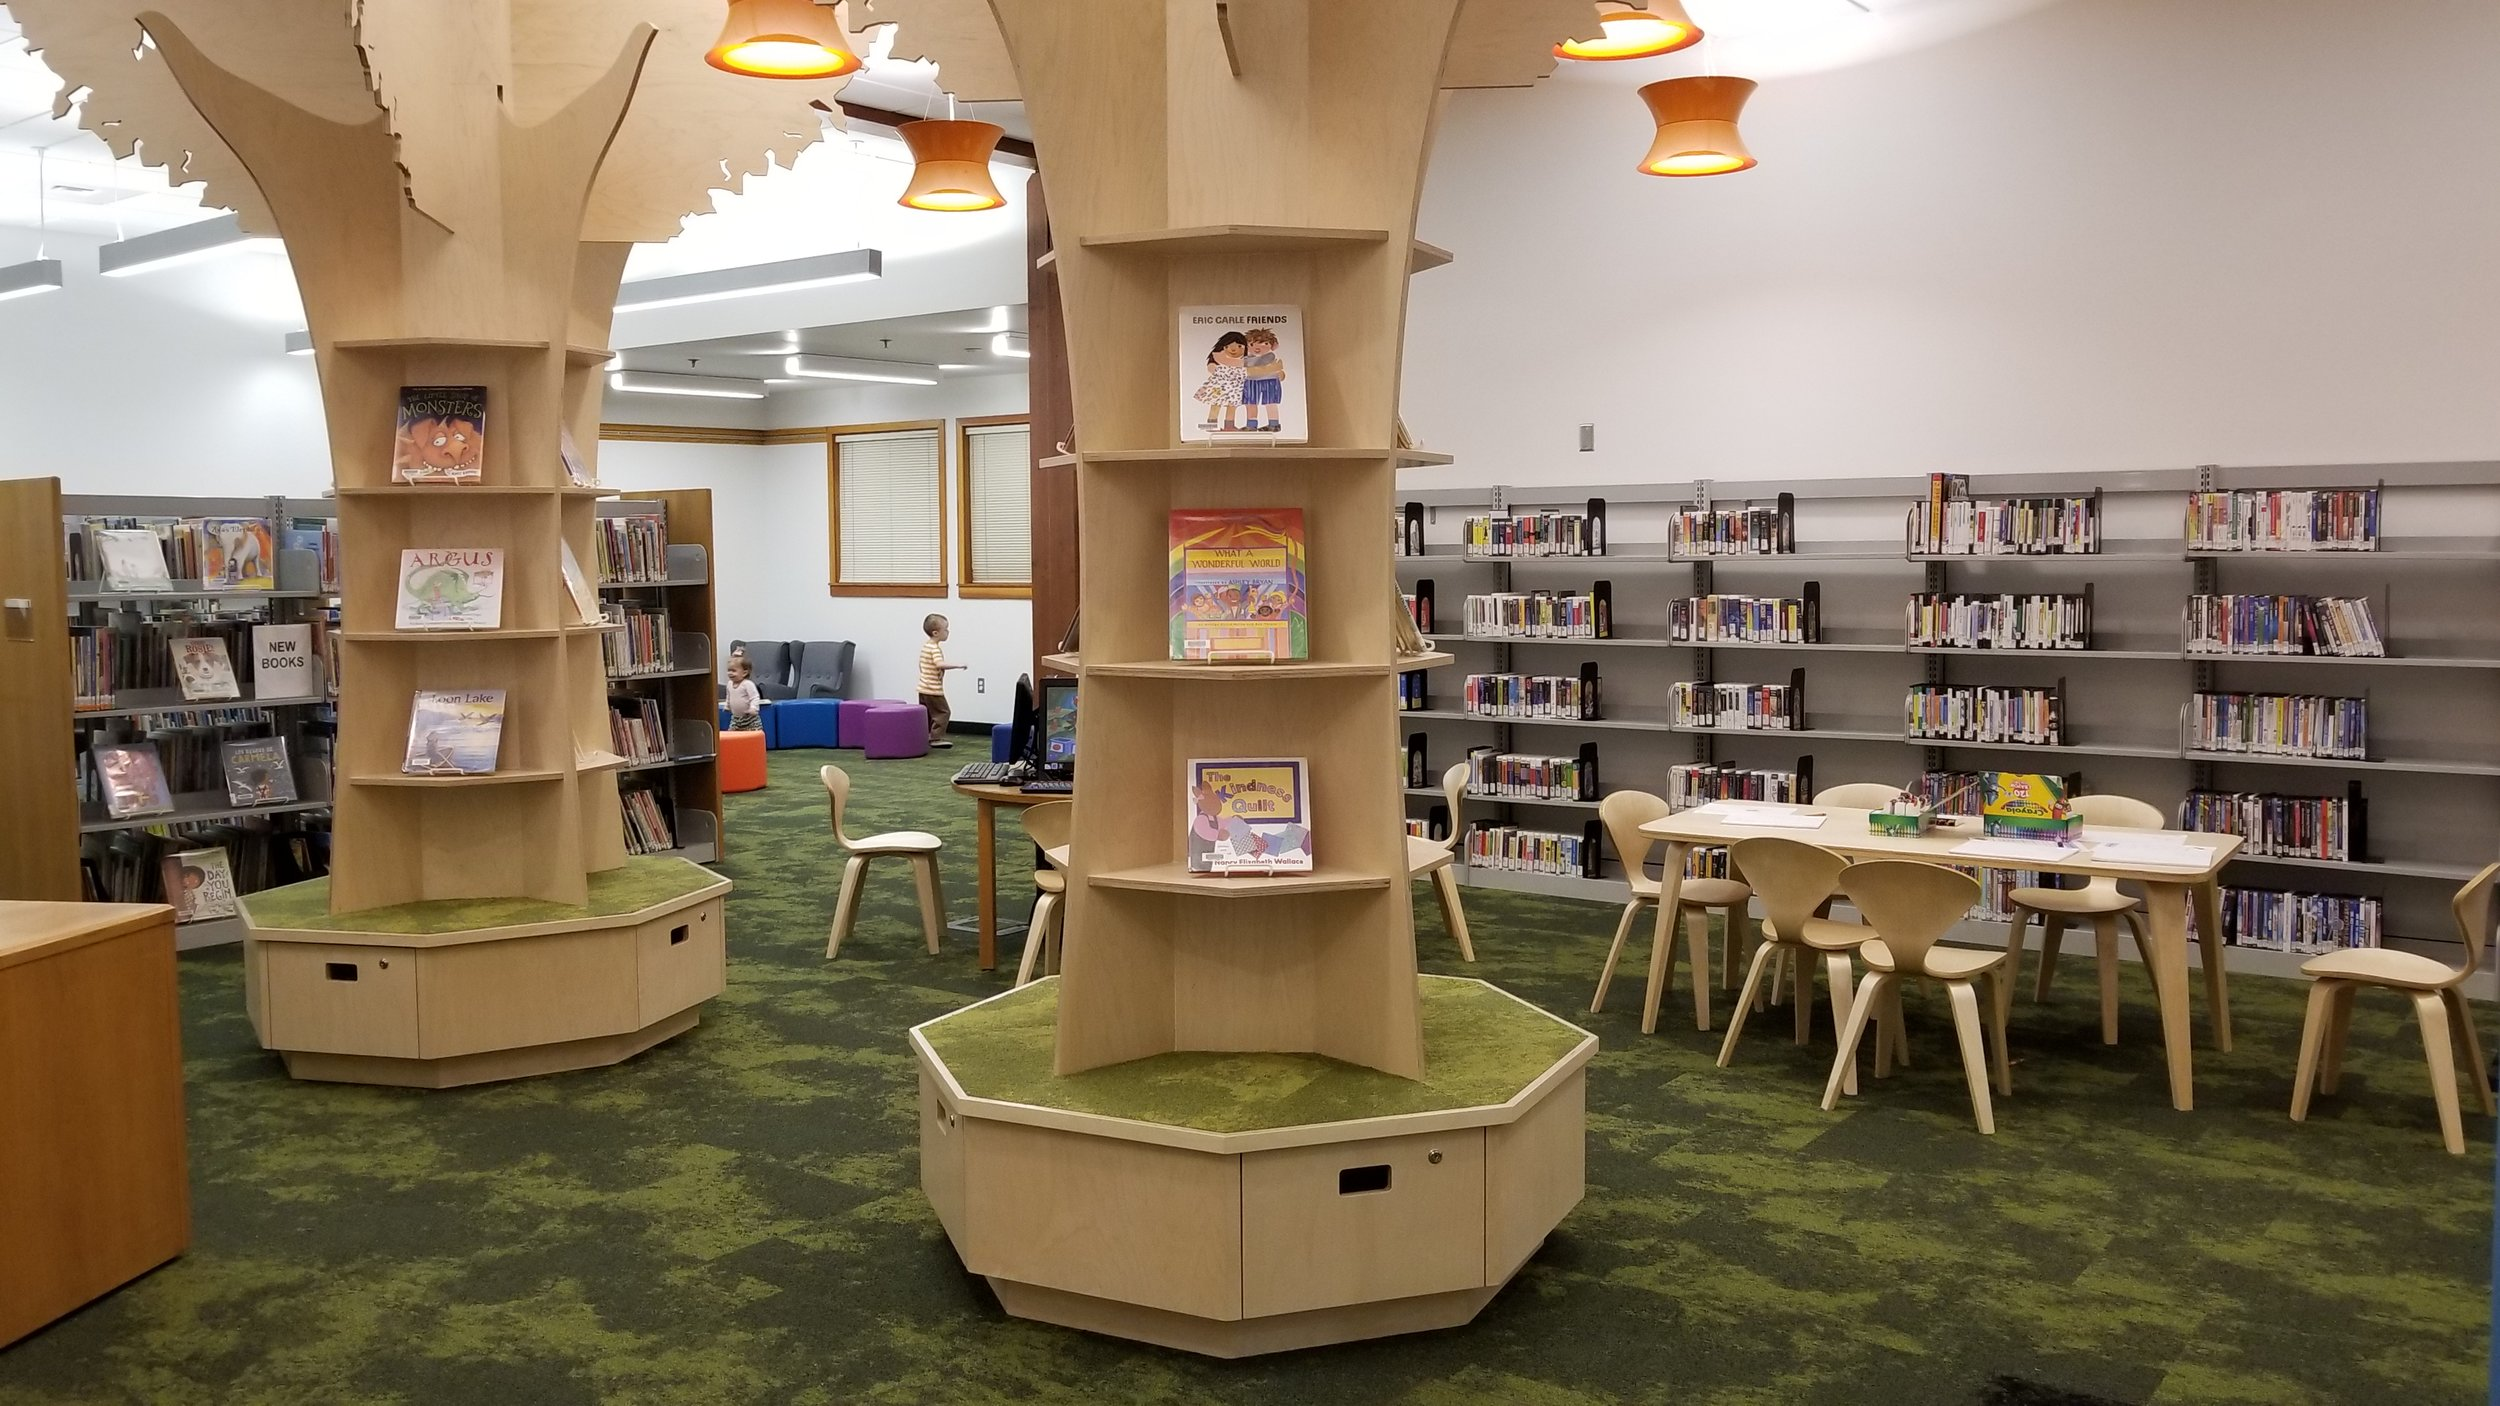 The remodeled library features a spacious new children's room. Photo by Koree Tate.